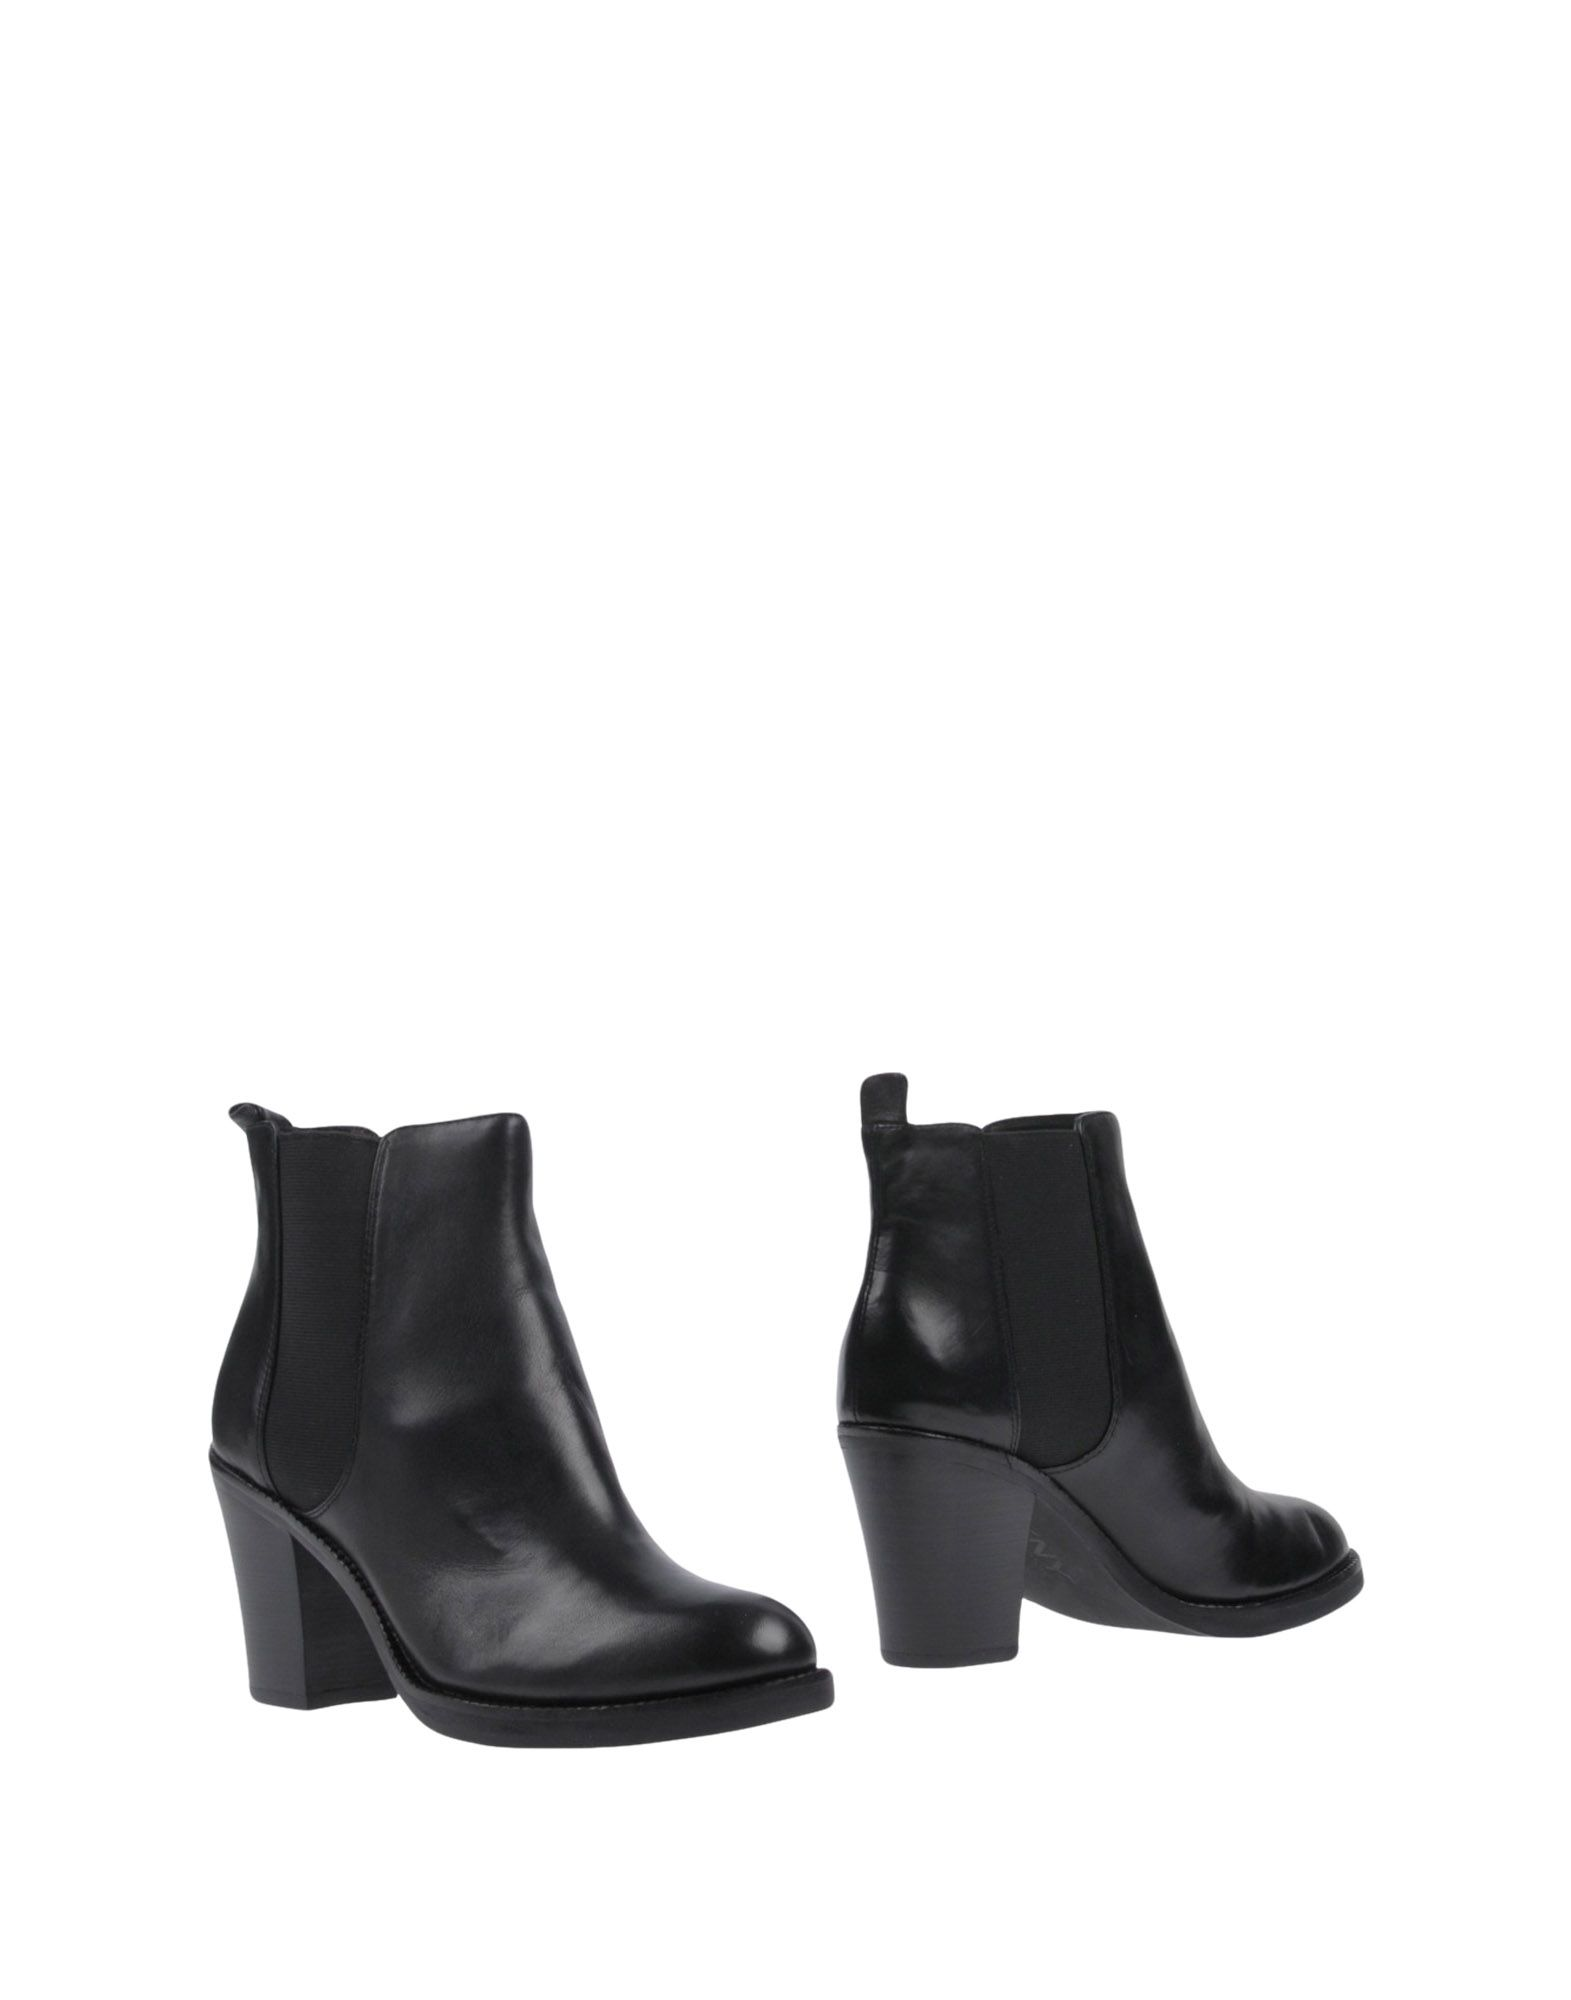 Chelsea Boots Dkny Donna - 11447208TT